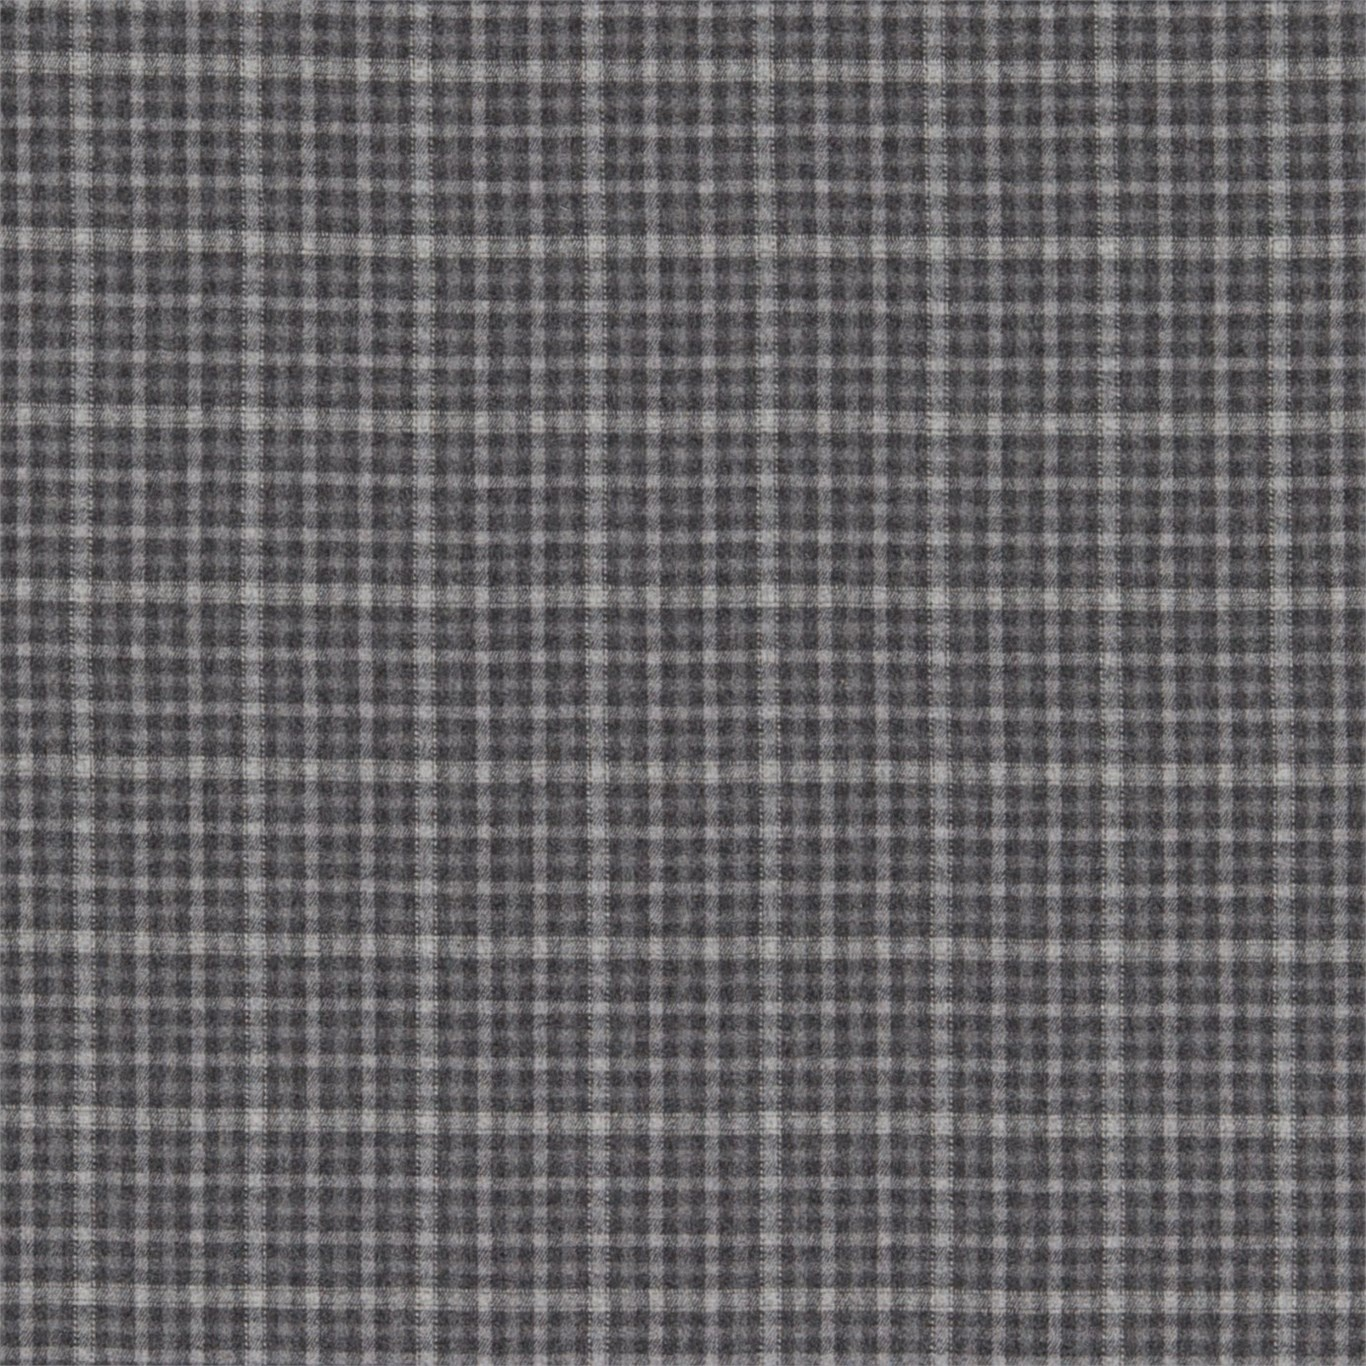 Image of Sanderson Langtry Charcoal/Flint Fabric 233263